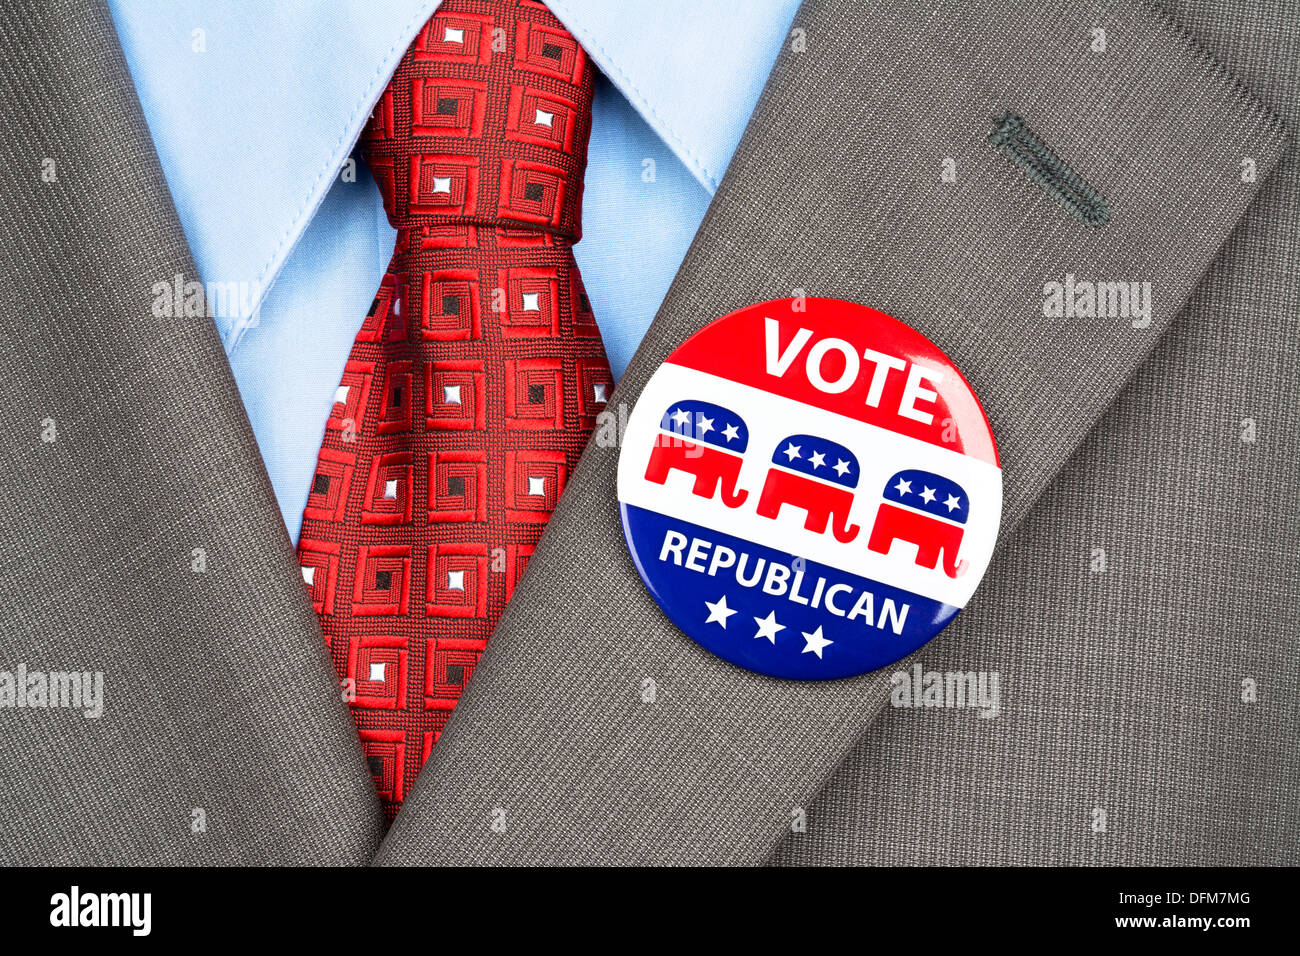 Close up of a republican voting badge on the suit jacket lapel of an American voter. - Stock Image